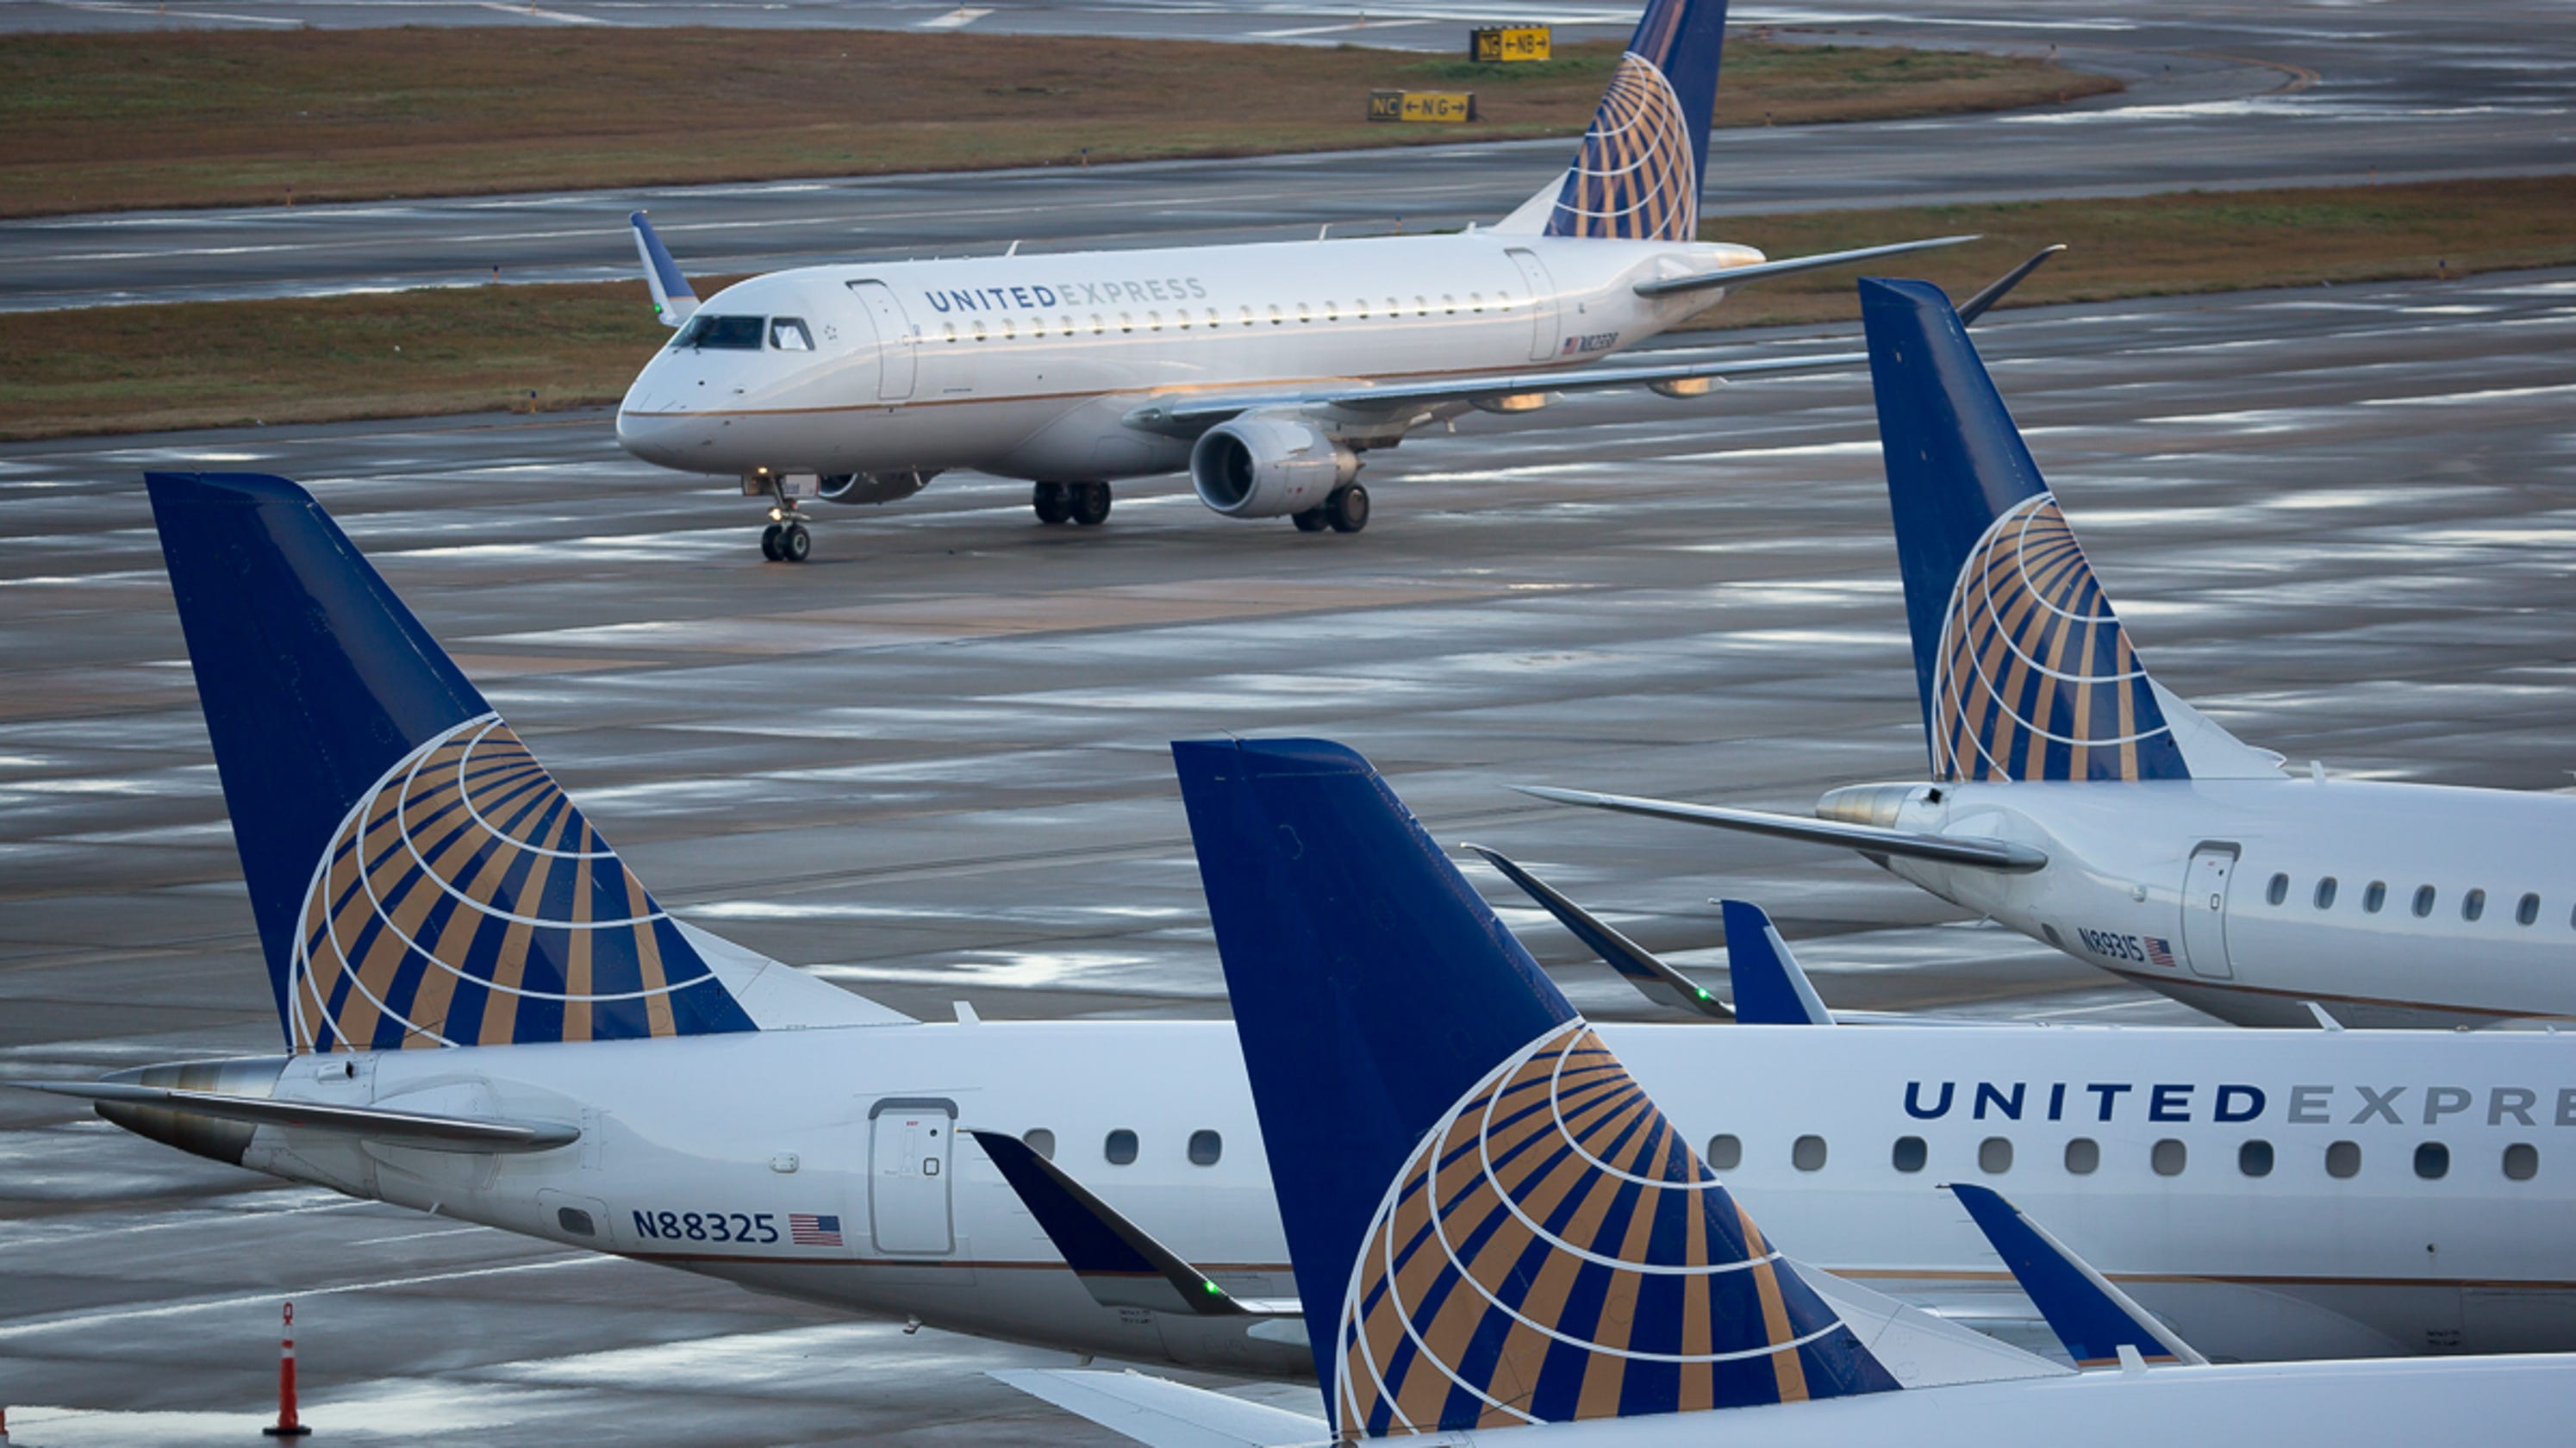 United Airlines fires 35 employees for abusing, selling